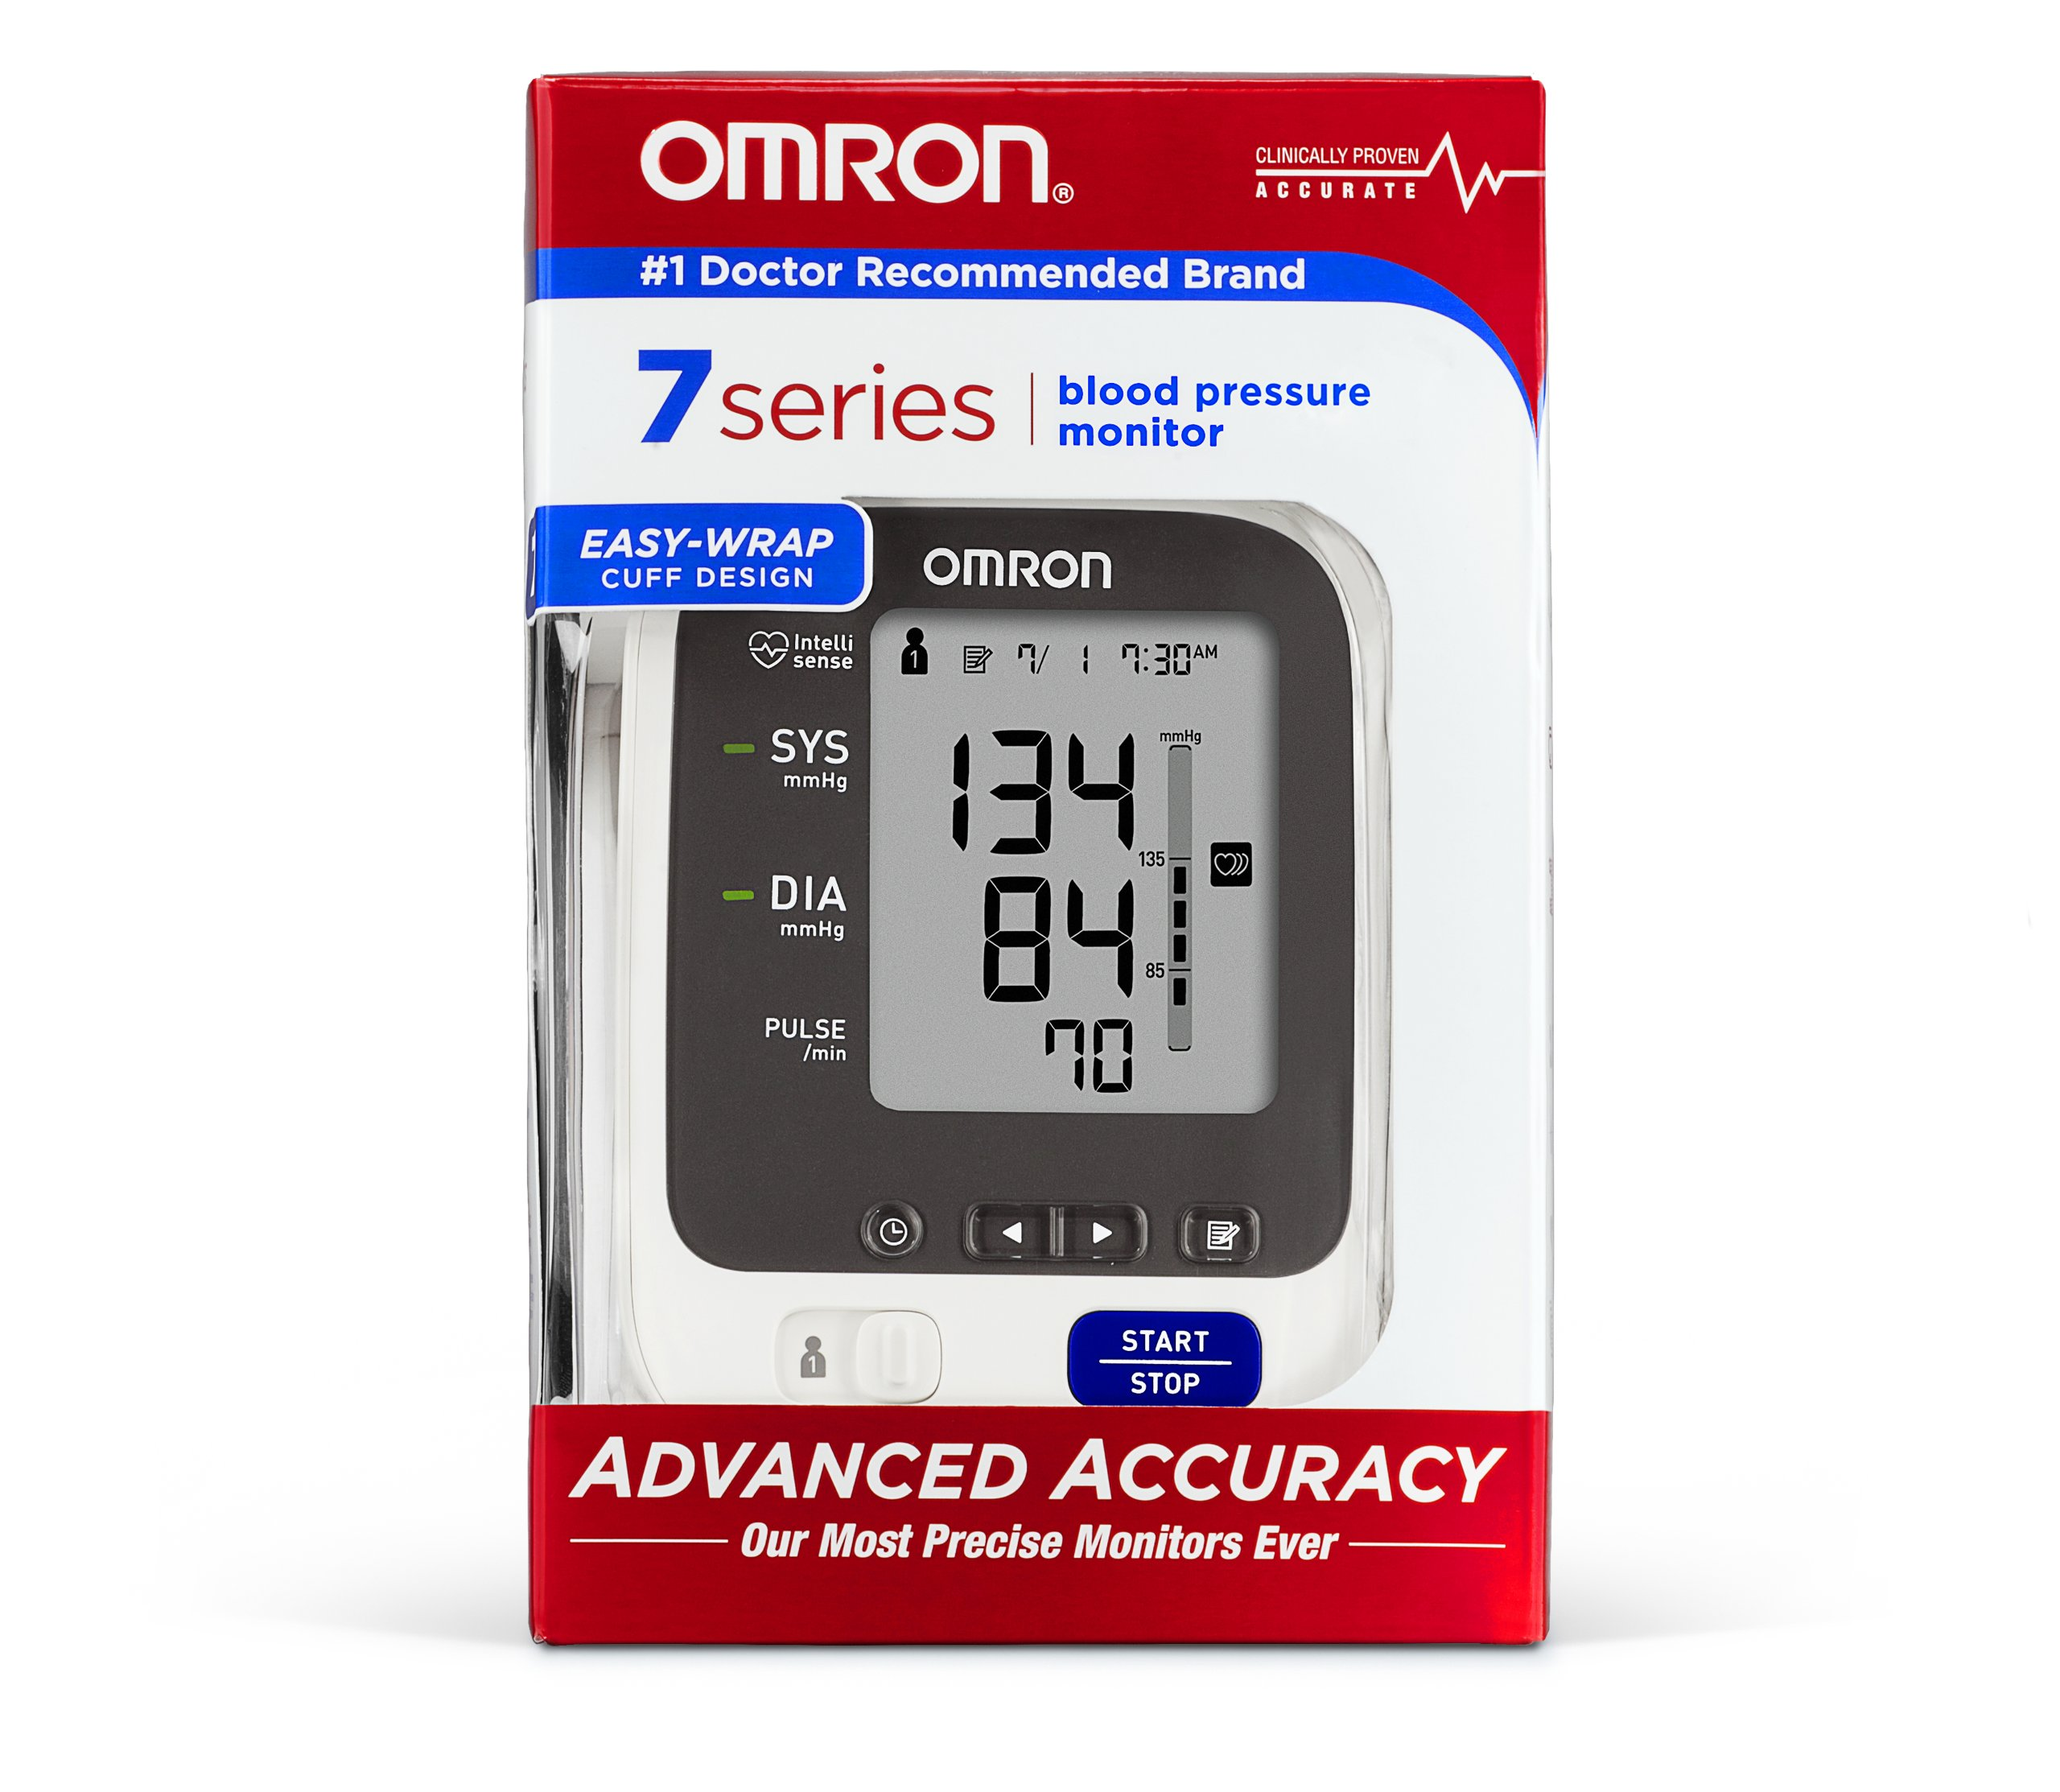 Omron 7 Series Upper Arm Blood Pressure Monitor with Two User Mode (120 Reading Memory) by Omron (Image #2)